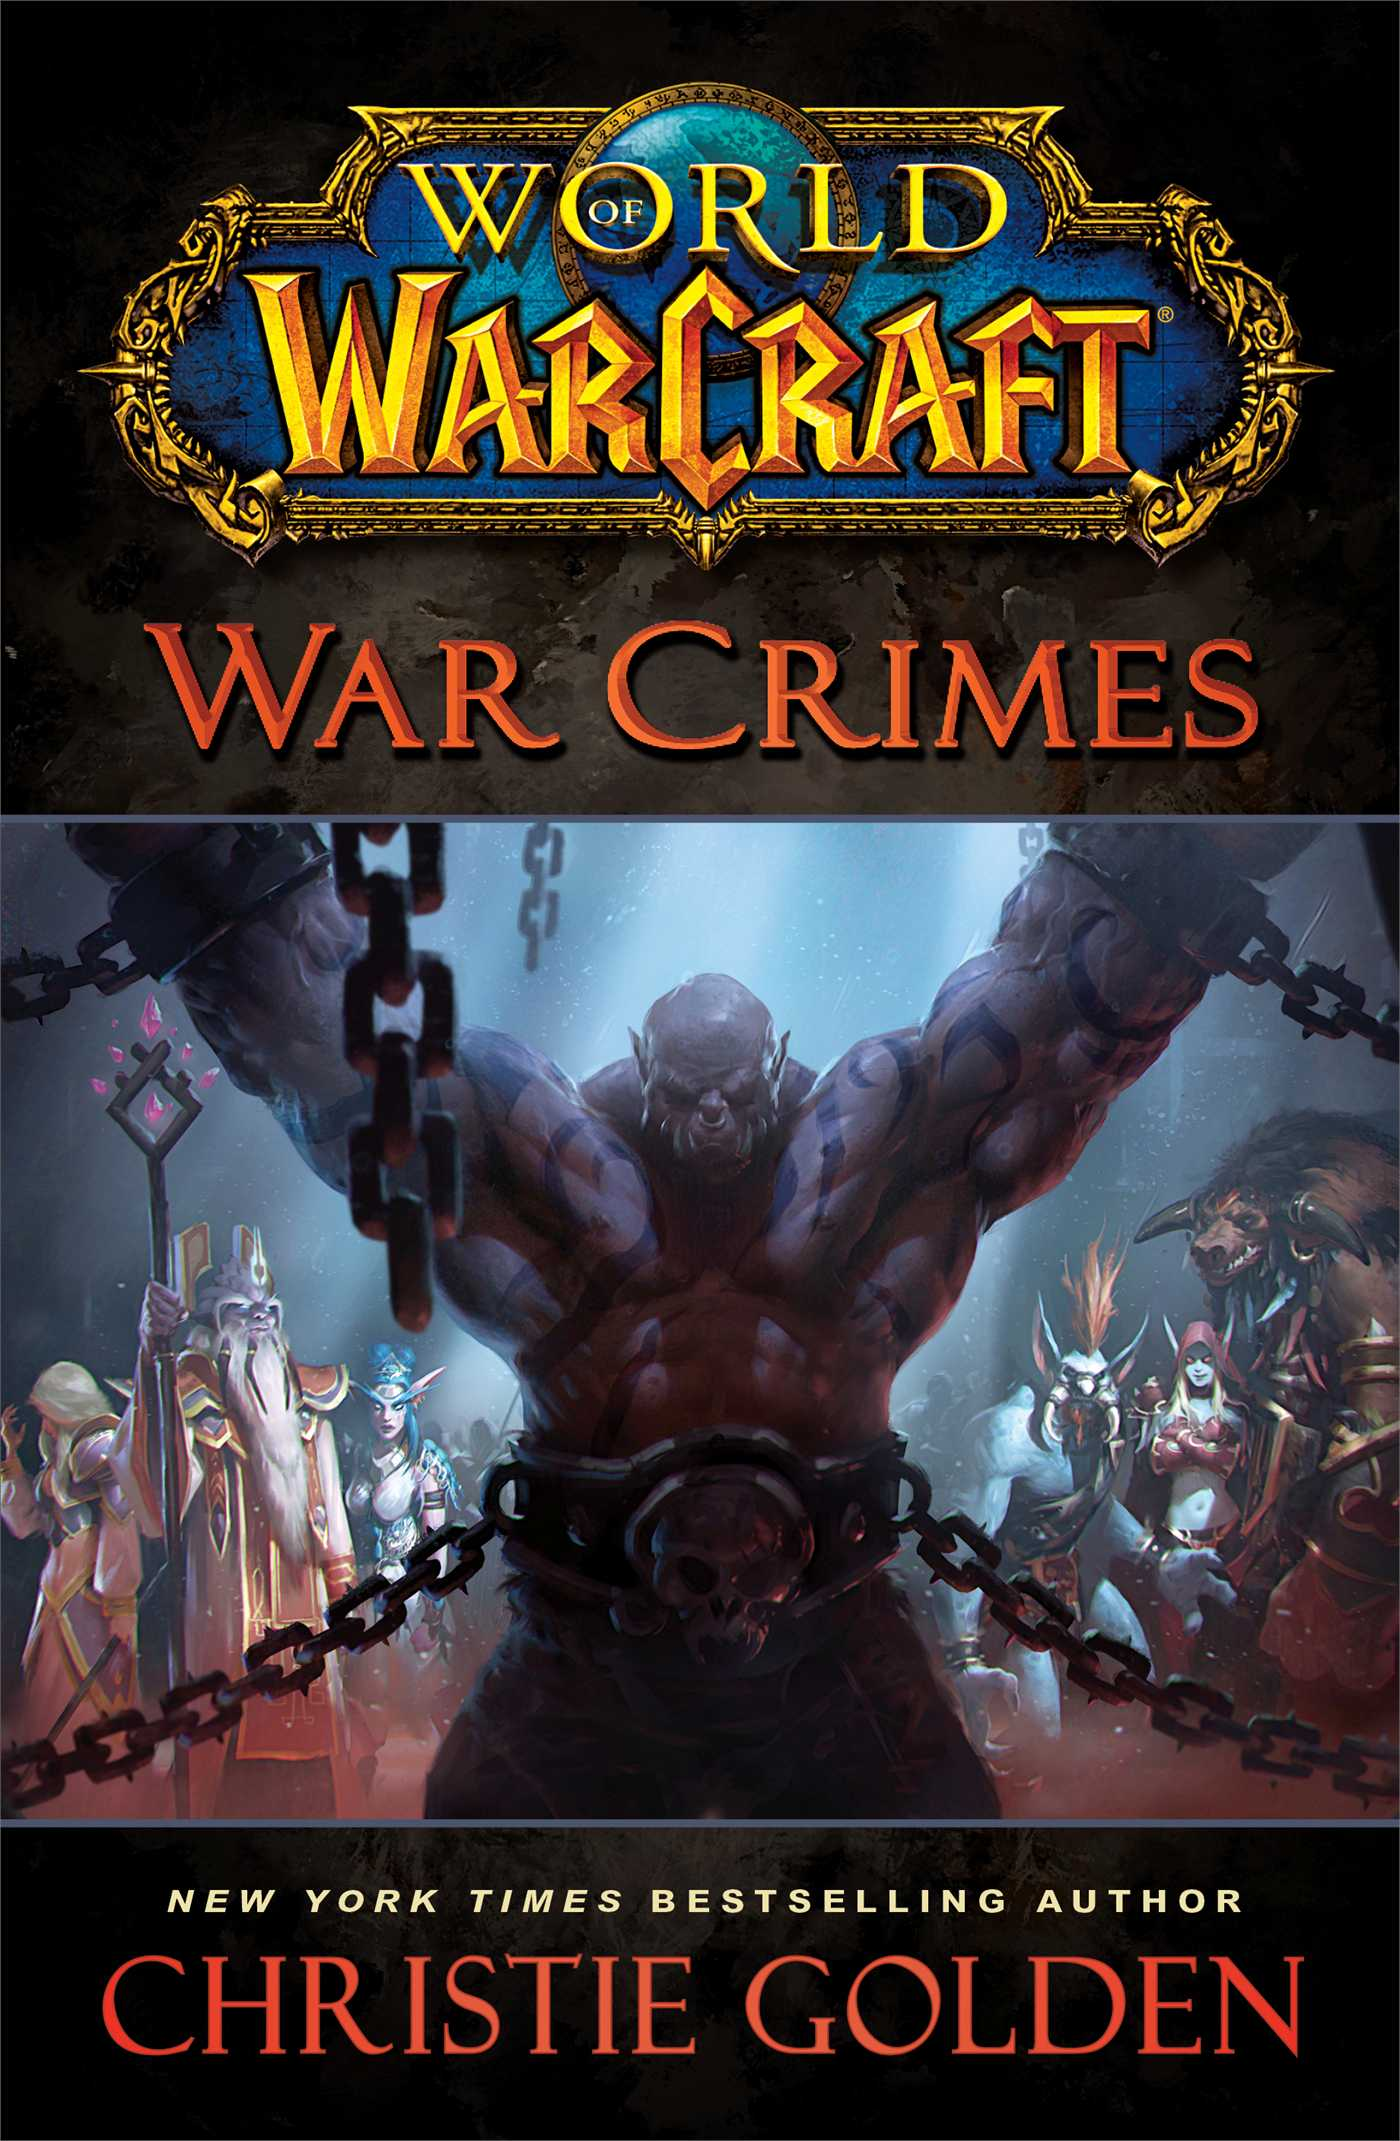 World of warcraft war crimes 9781451684483 hr